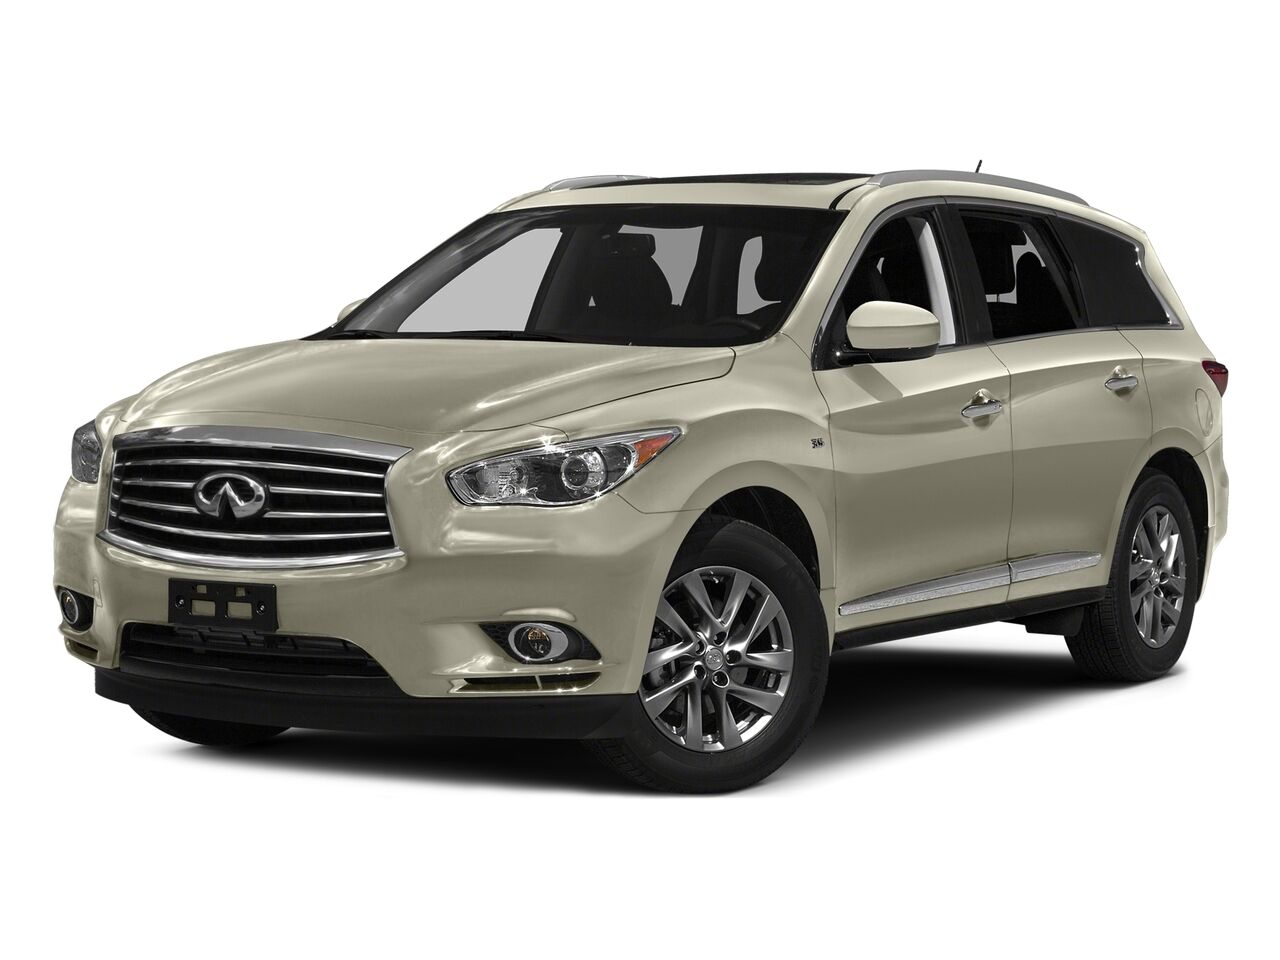 2015 Infiniti QX60 Base AWD Price UT